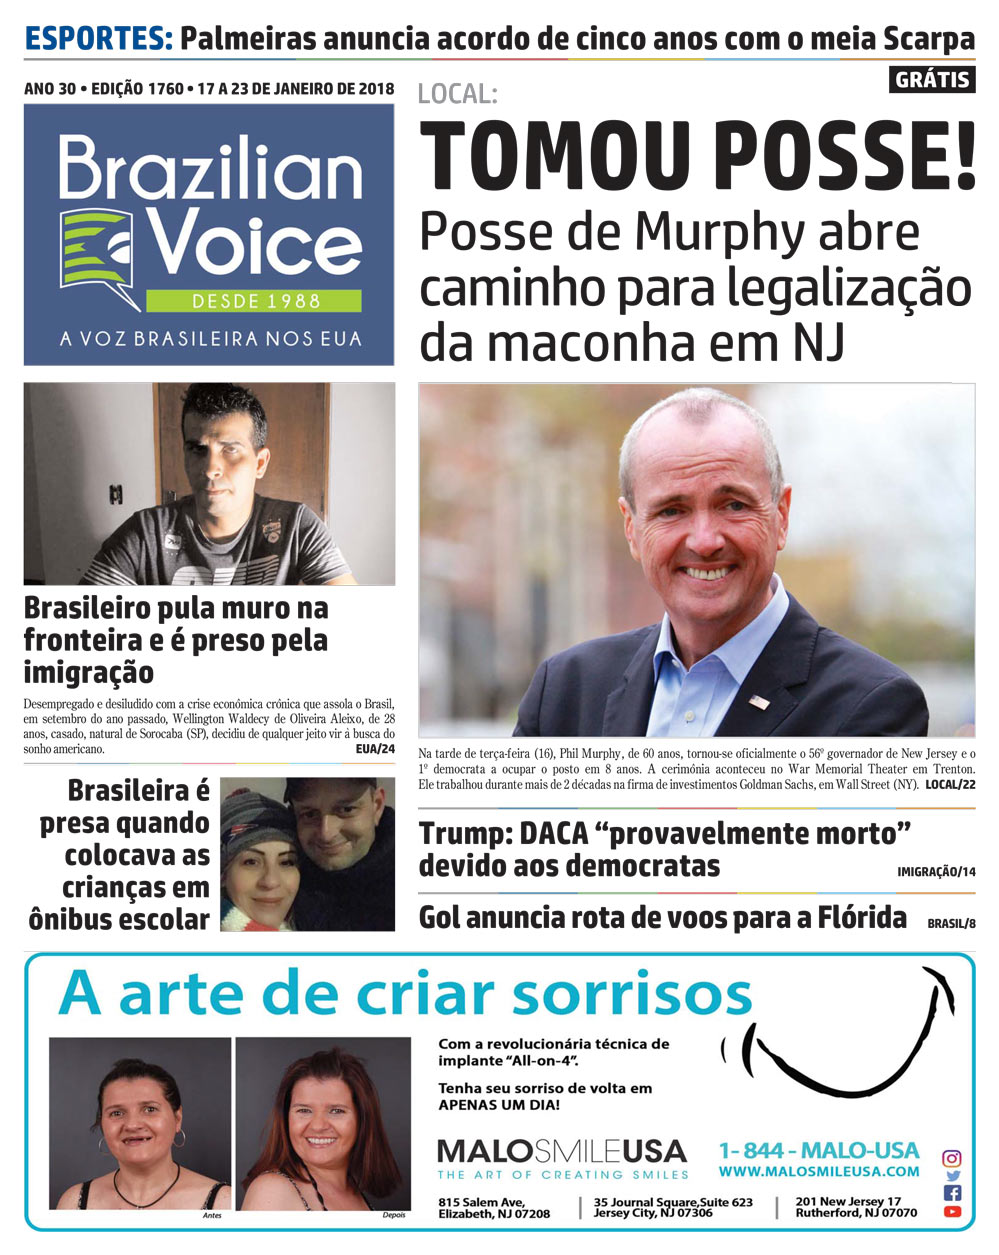 CAPA FACEBOOK 1 Home page